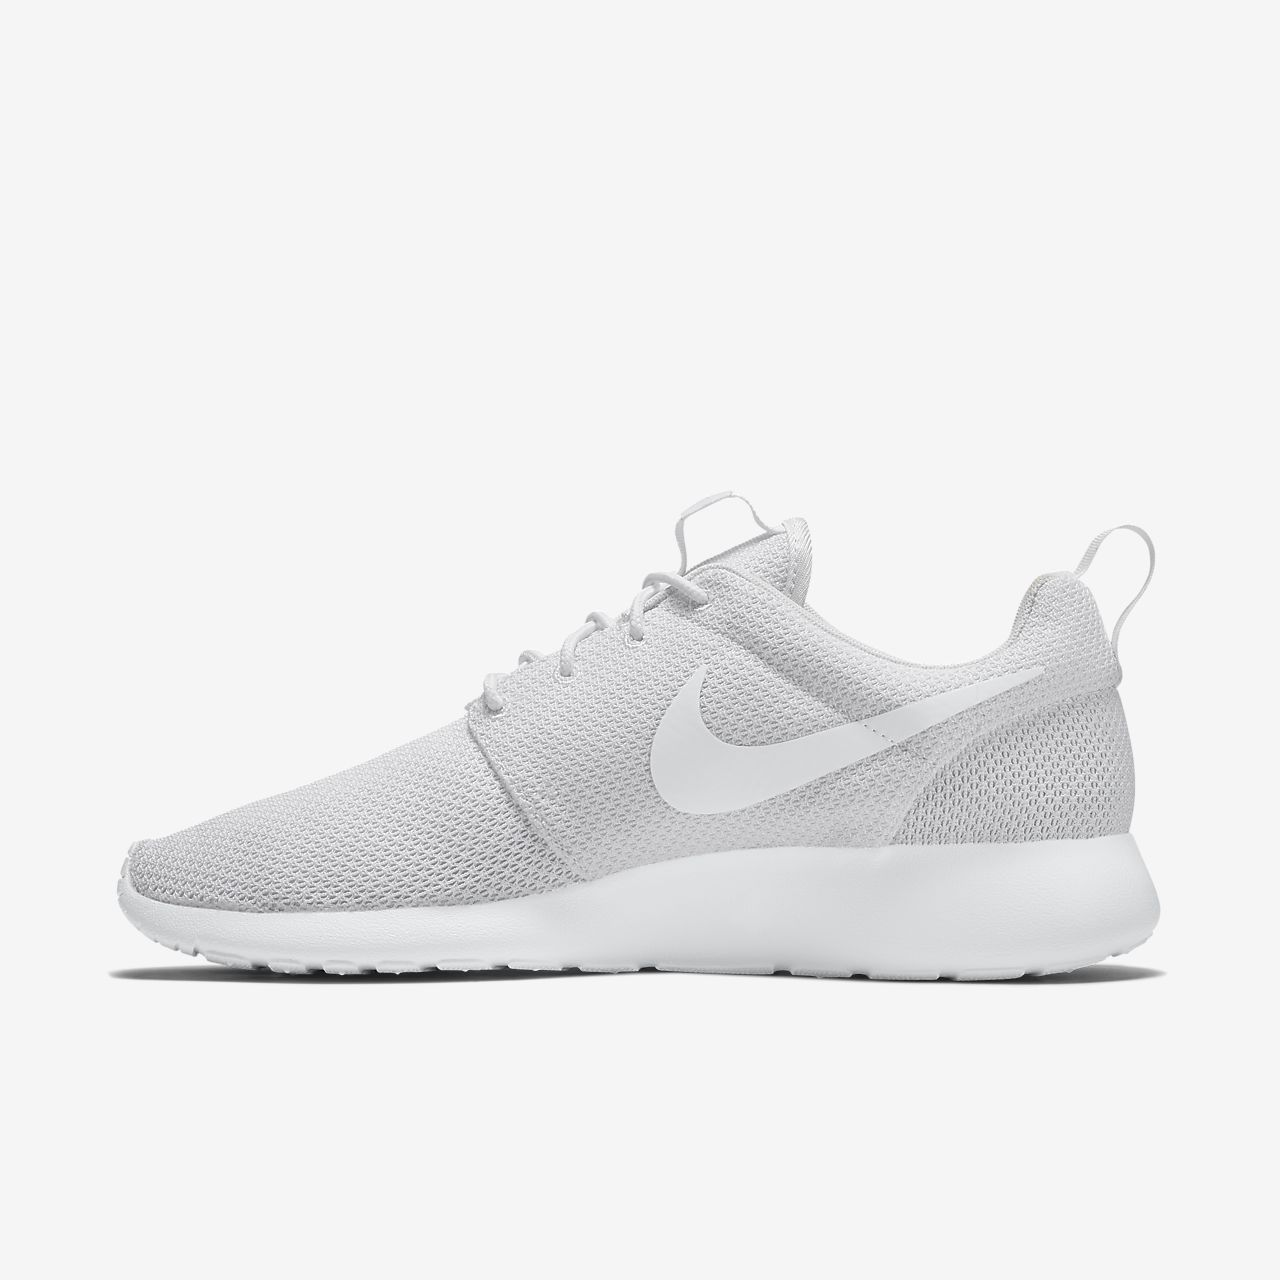 aae3d092d5dd Nike Roshe One Men s Shoe. Nike.com